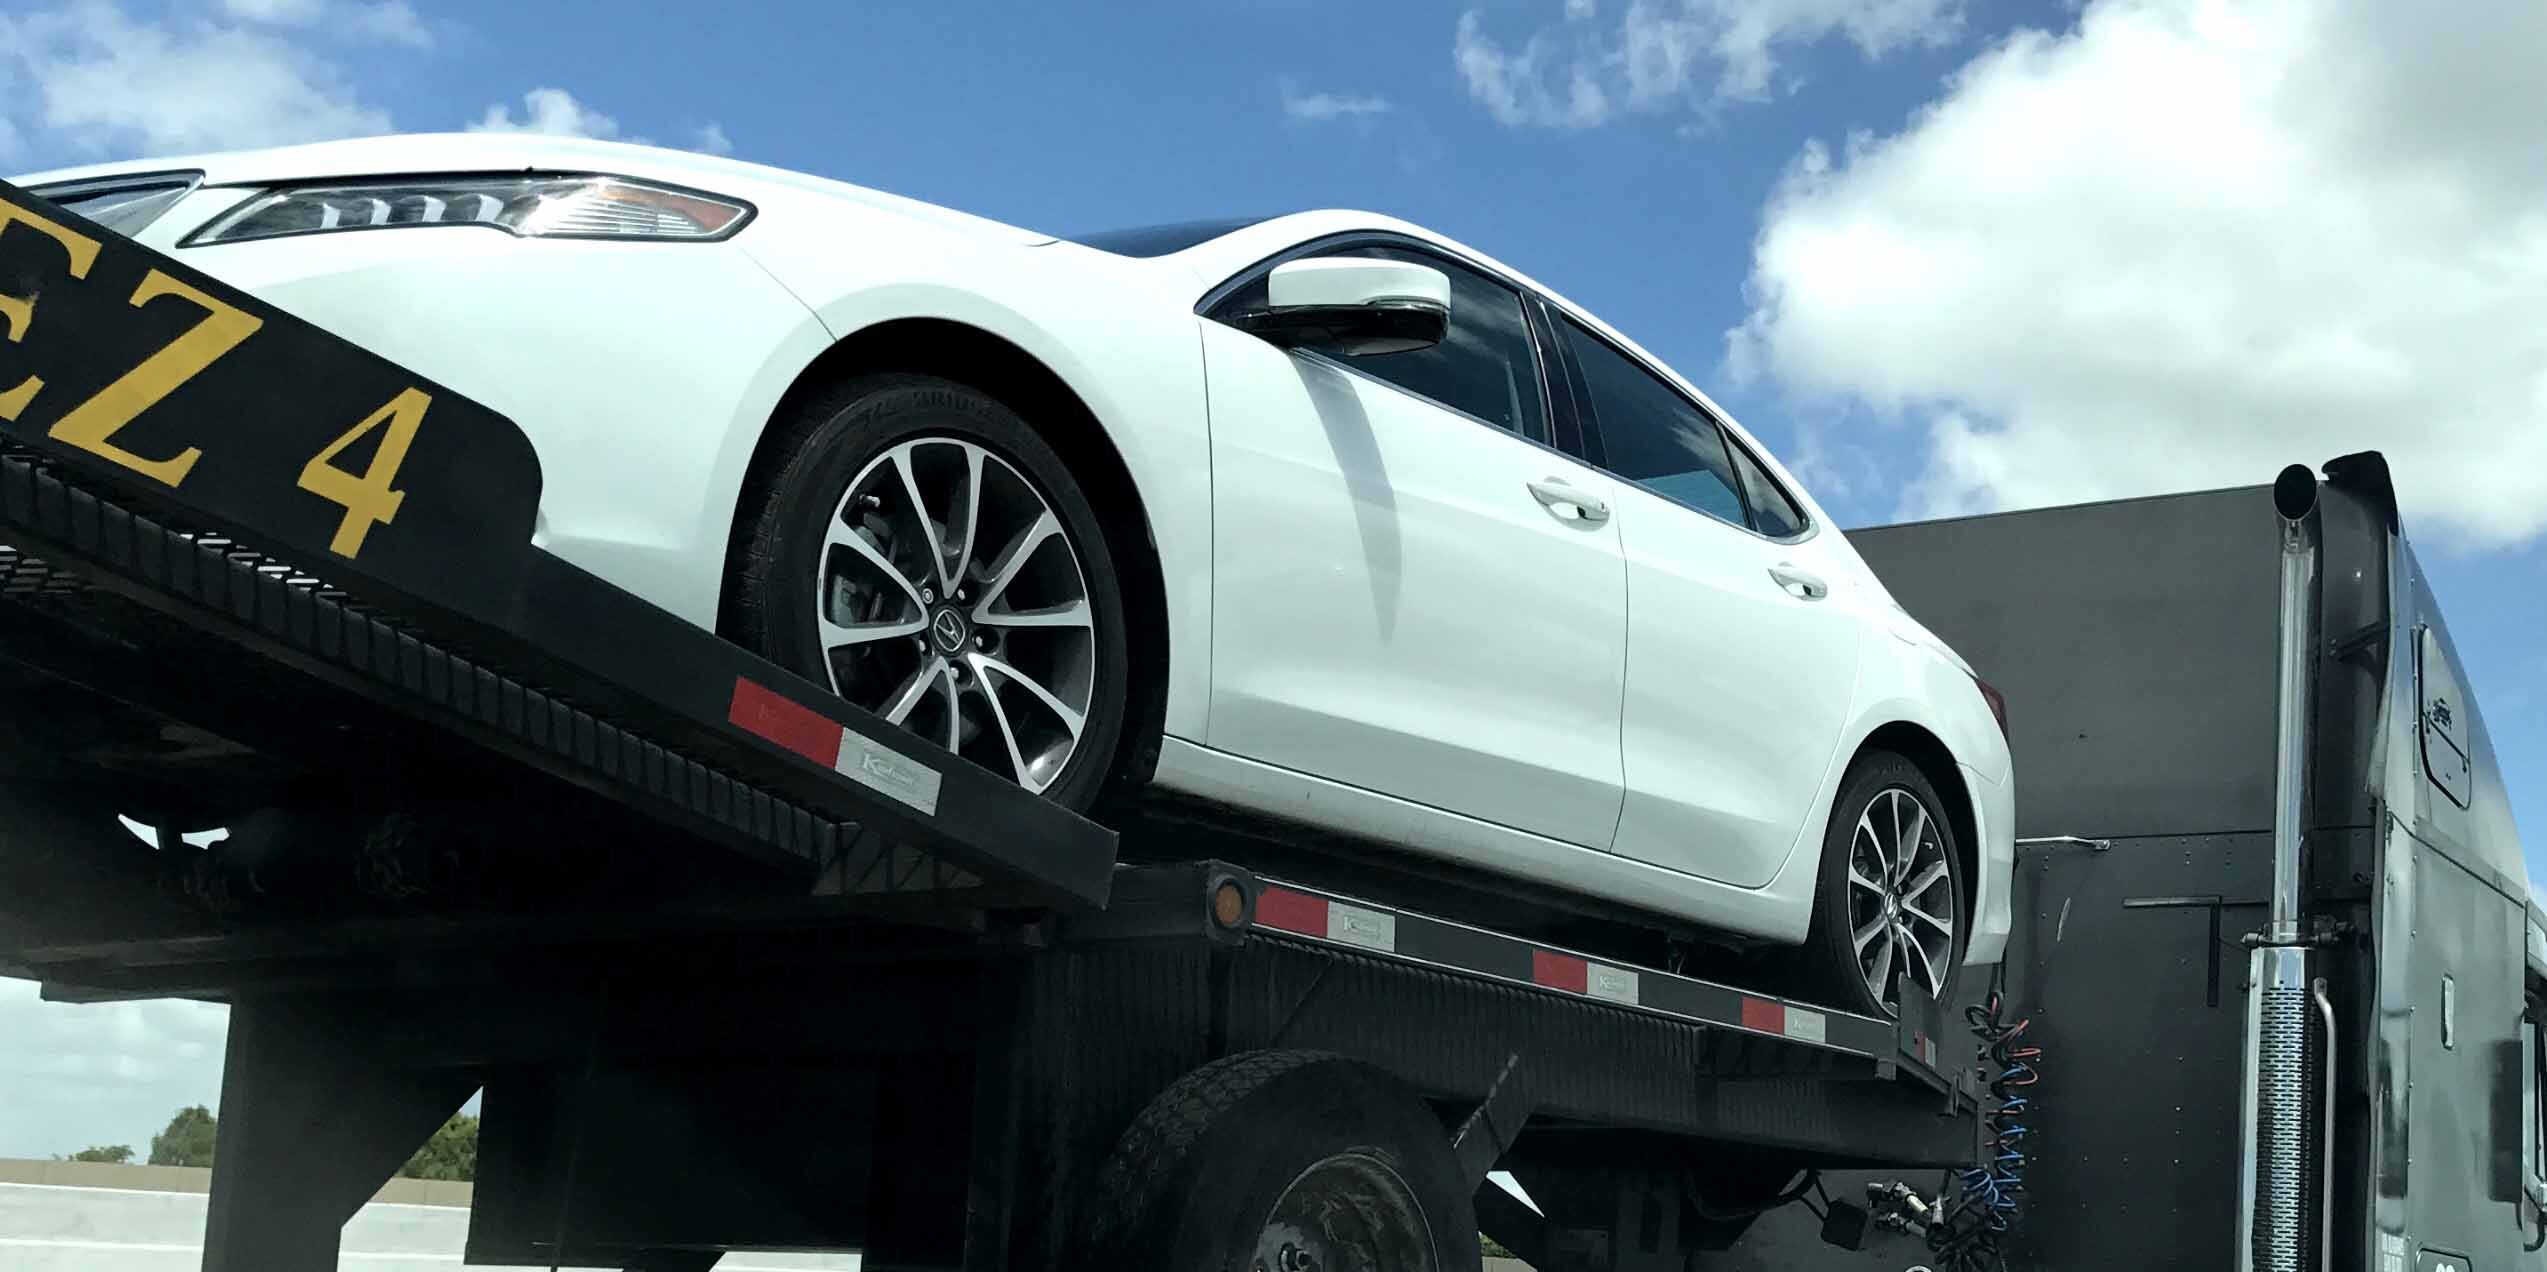 car on auto transport carrier